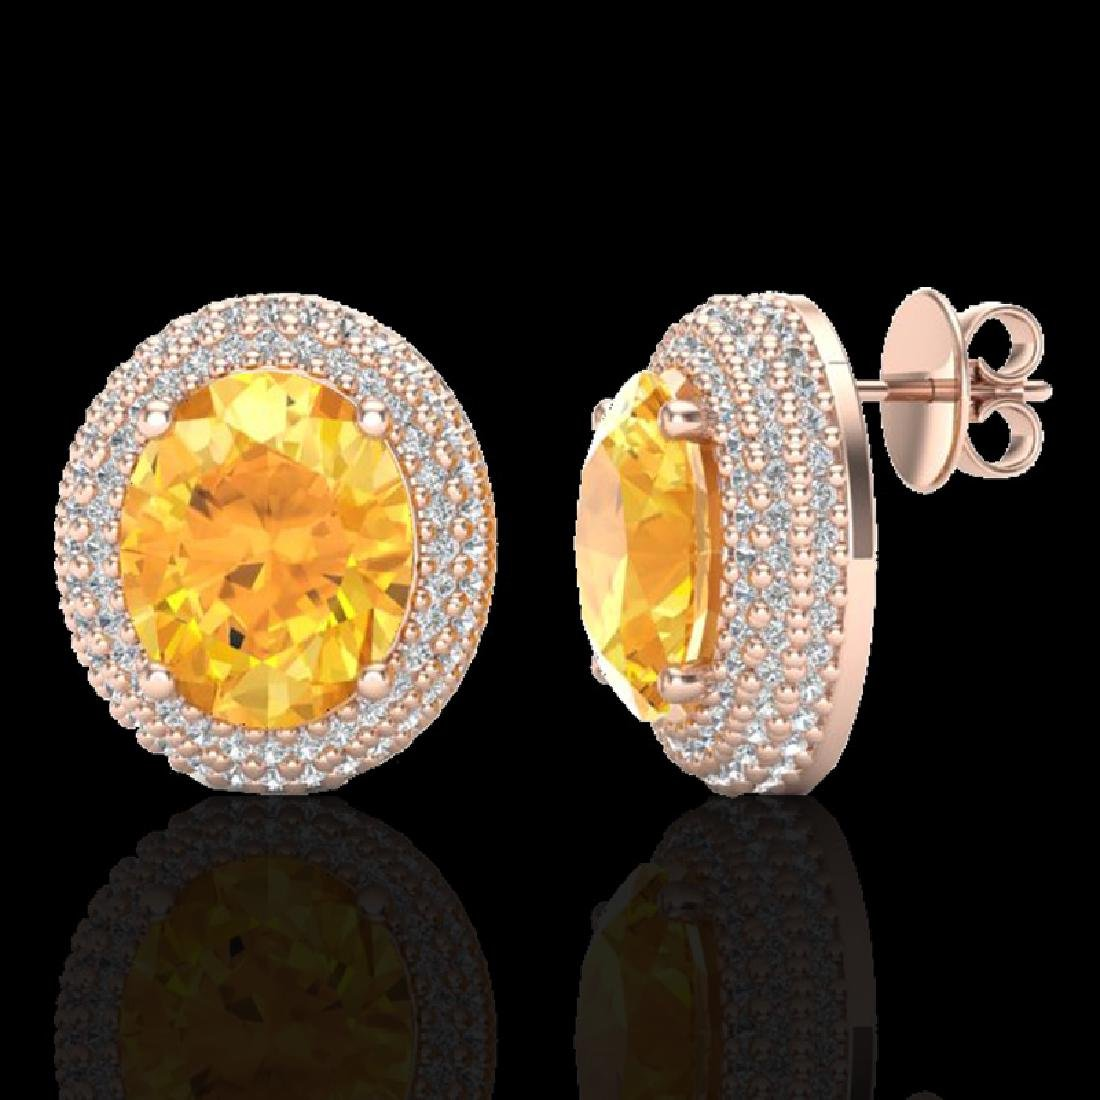 8 CTW Citrine & Micro Pave VS/SI Diamond Earrings 14K - 2